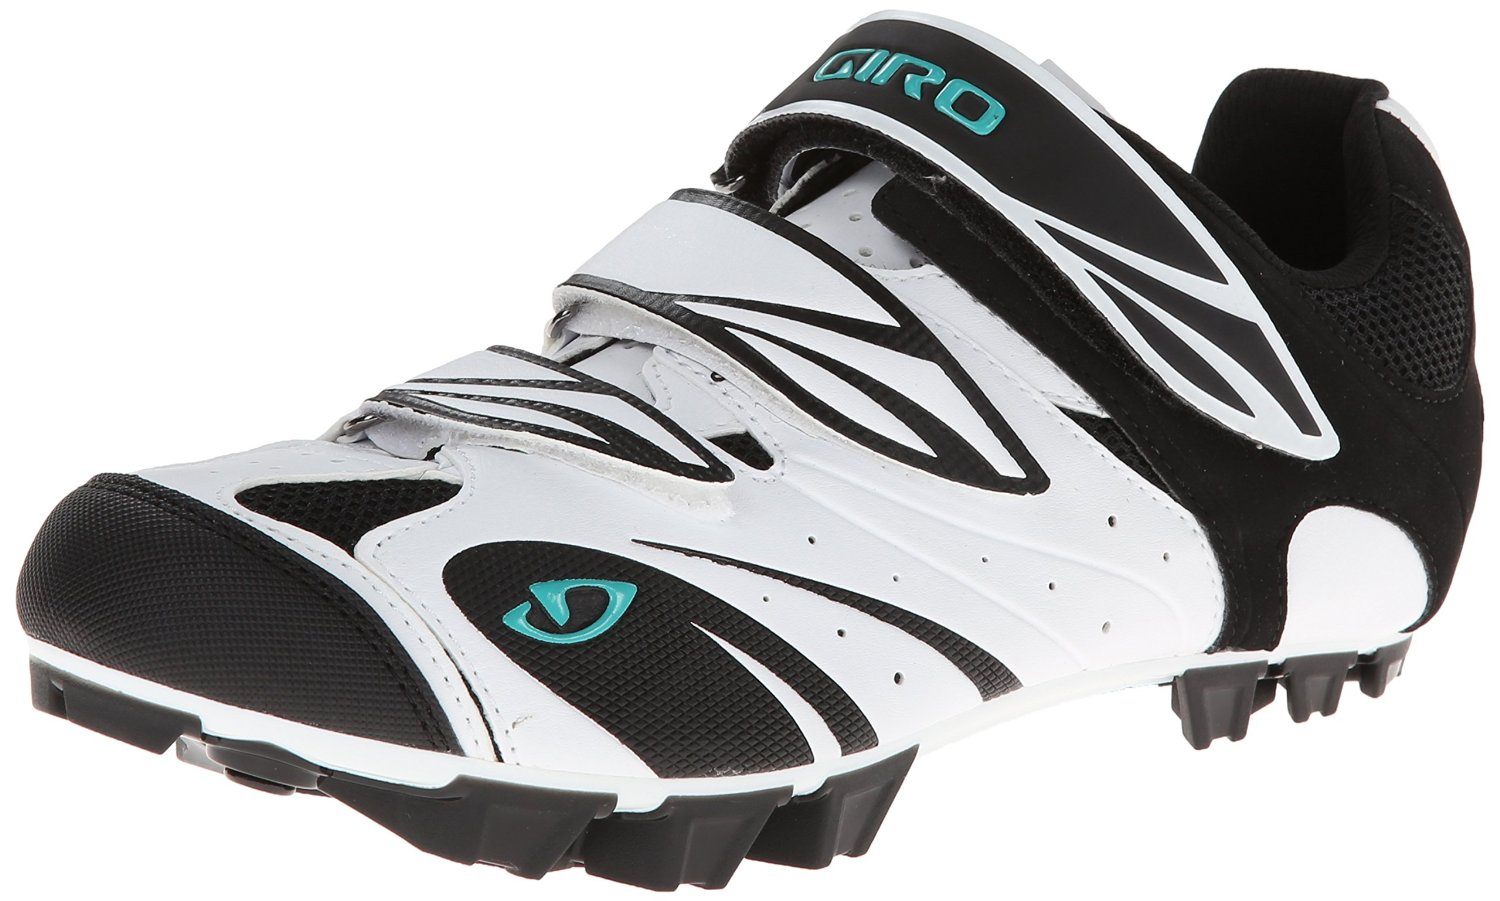 Giro Riela Bike Shoe Womens Review - Optimum Fitness